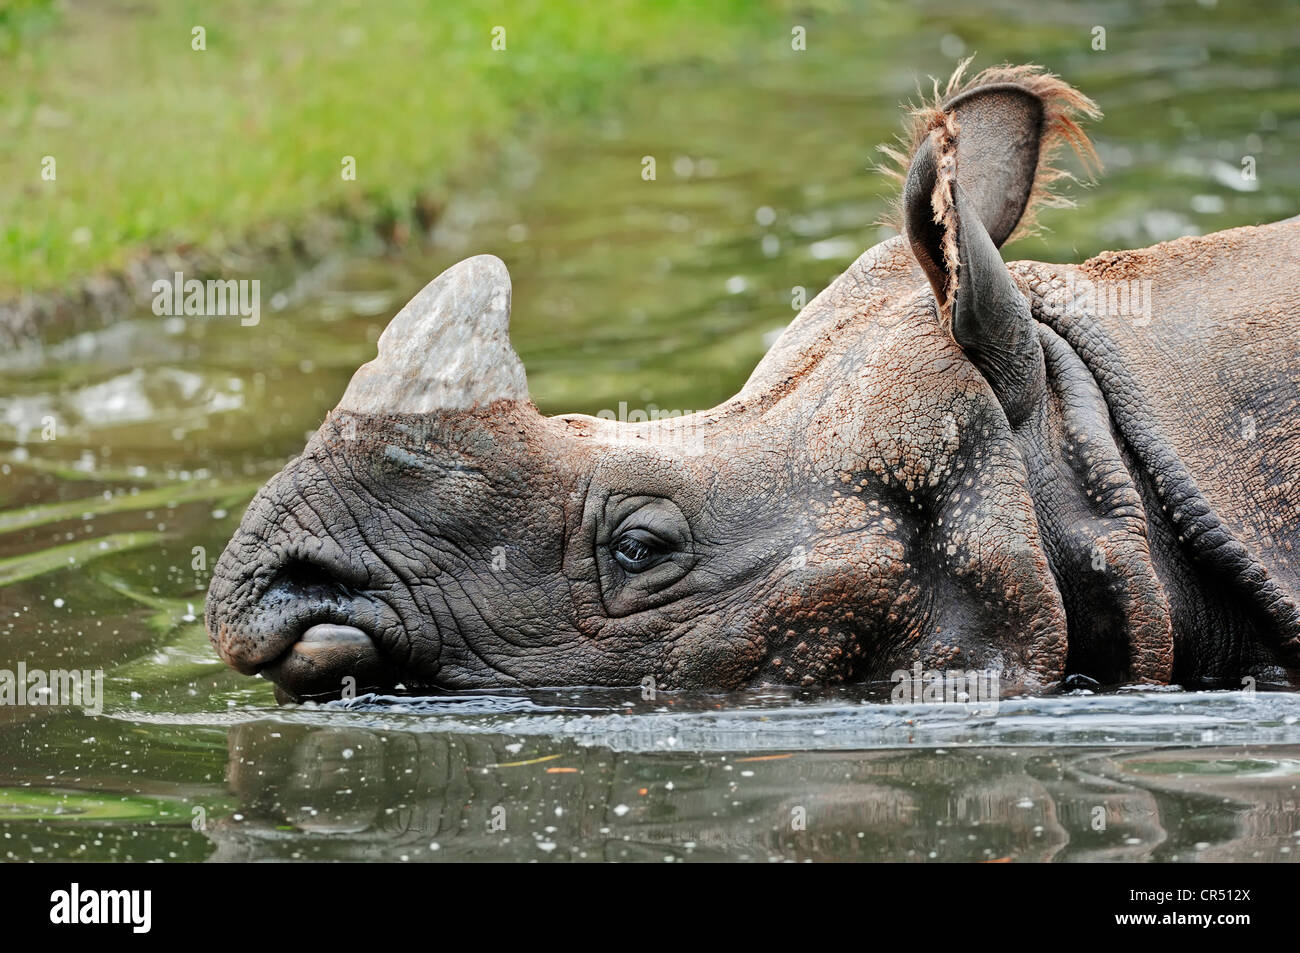 Greater one-horned rhino WWF